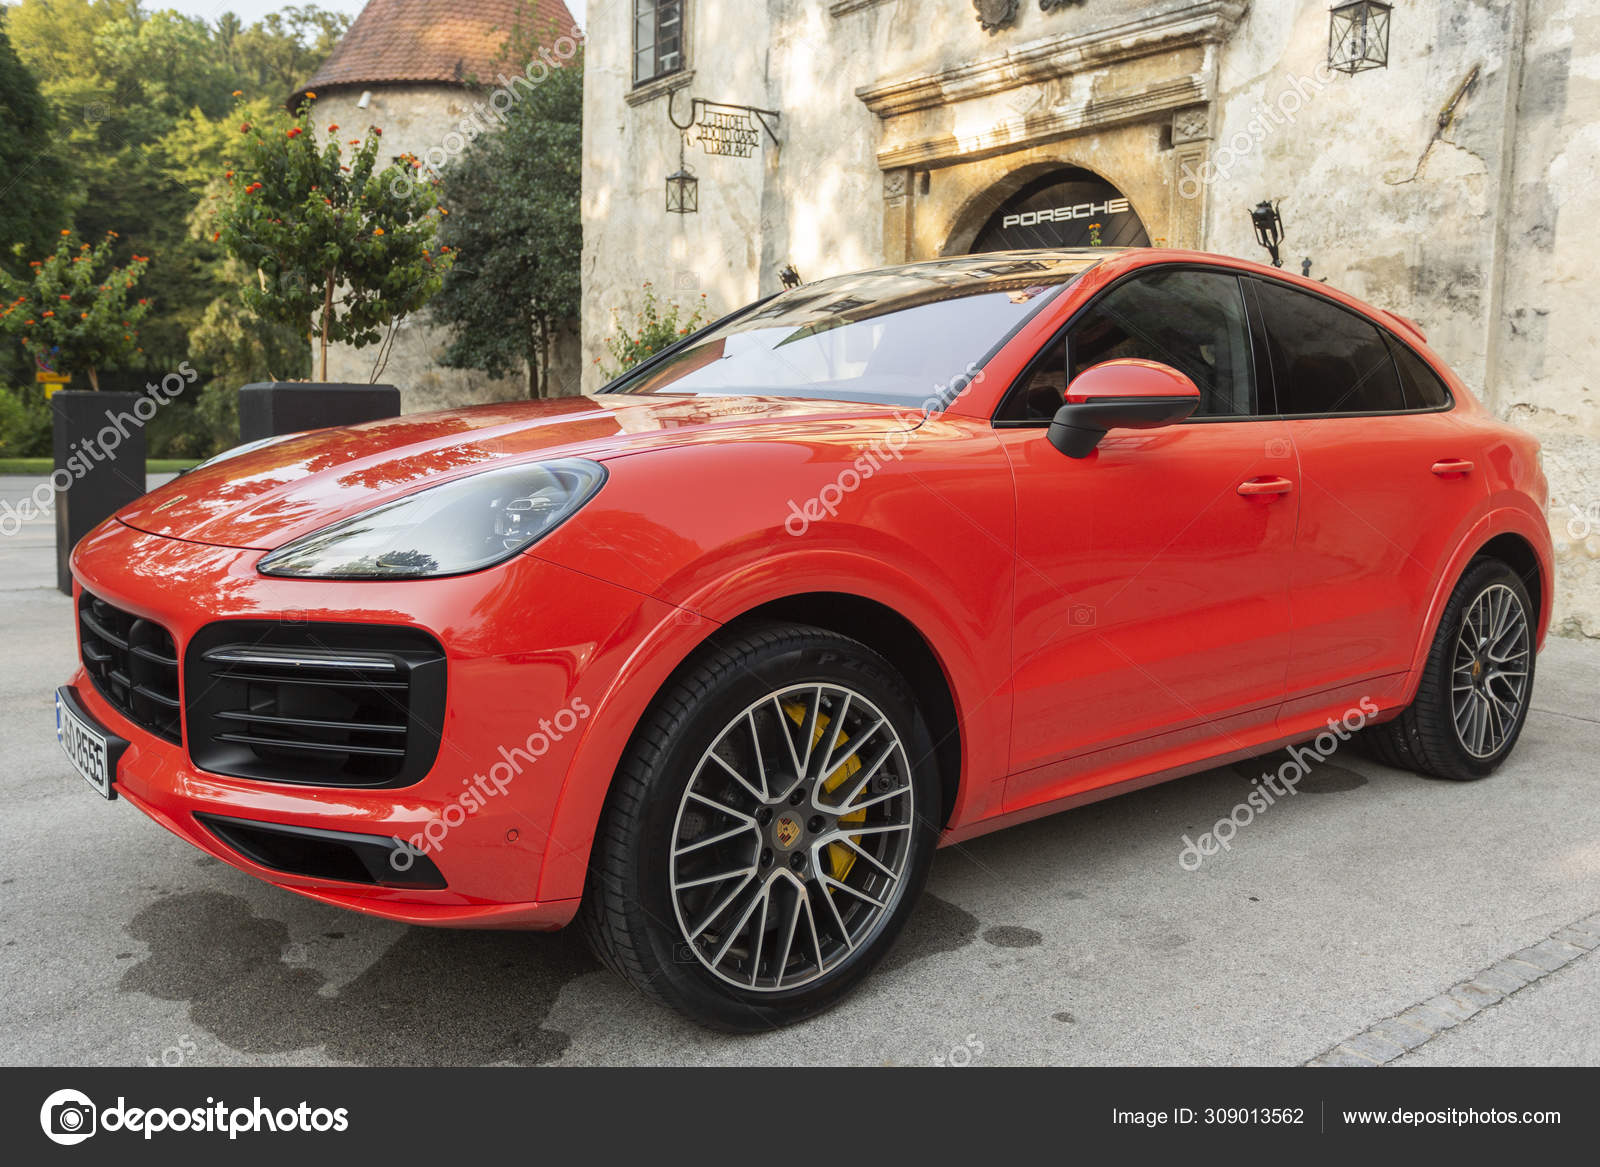 Slovenia Ljubljana 31 August 2019 Porsche Cayenne Coupe Turbo S From Stuttgart During Test Drive Red Suv With Sports Rims Stock Editorial Photo C Taborov 309013562